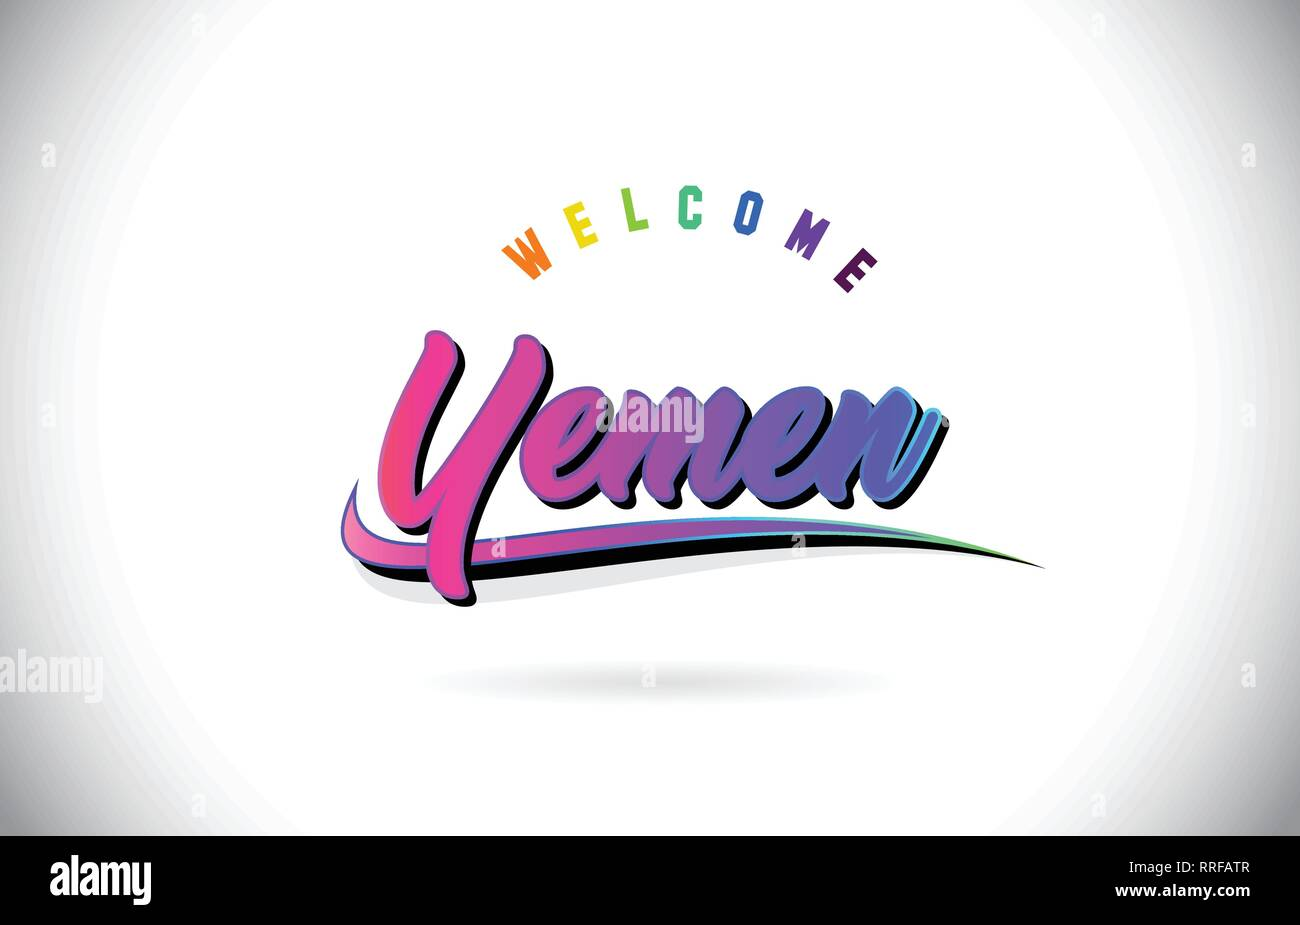 Yemen Welcome To Word Text with Creative Purple Pink Handwritten Font and Swoosh Shape Design Vector Illustration. - Stock Vector